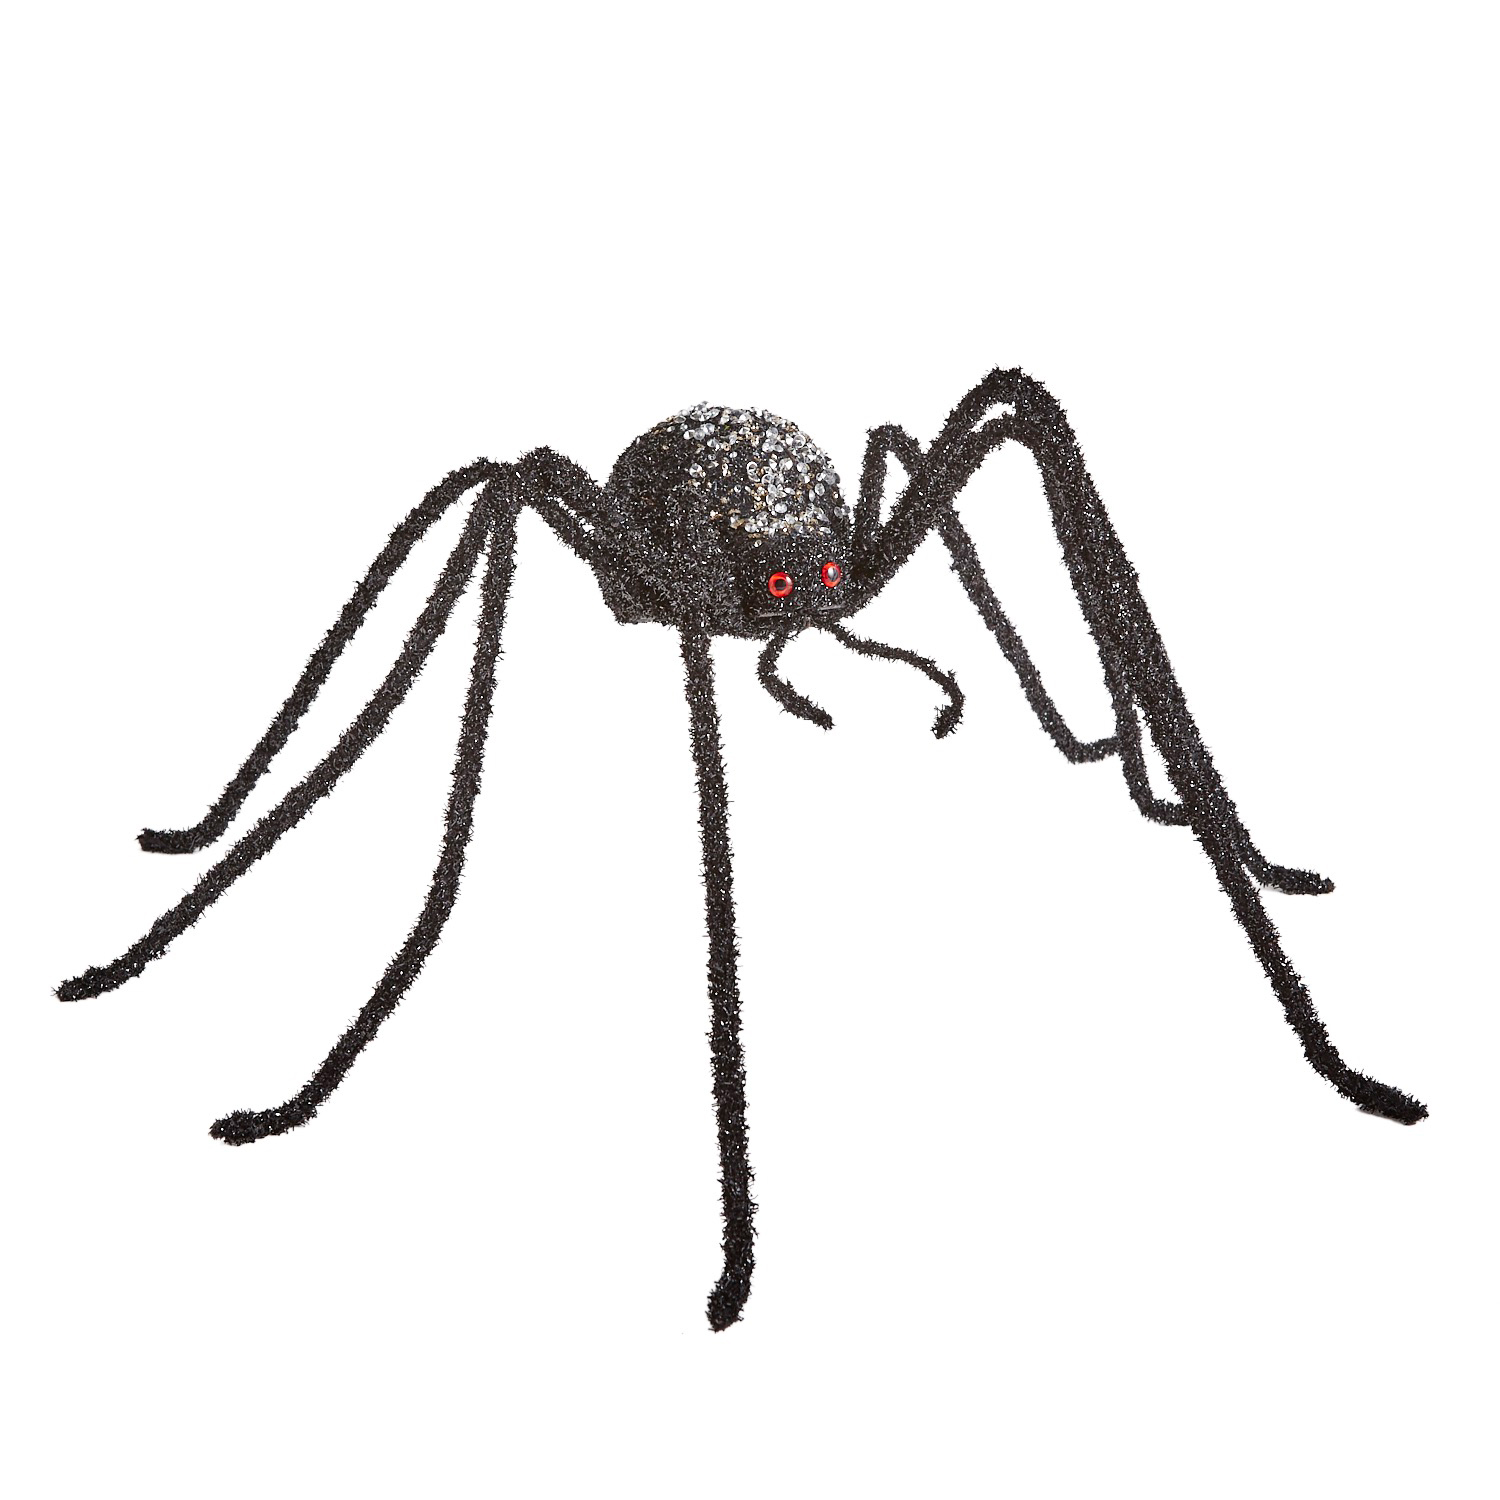 Sequined Large Spider Halloween Decor